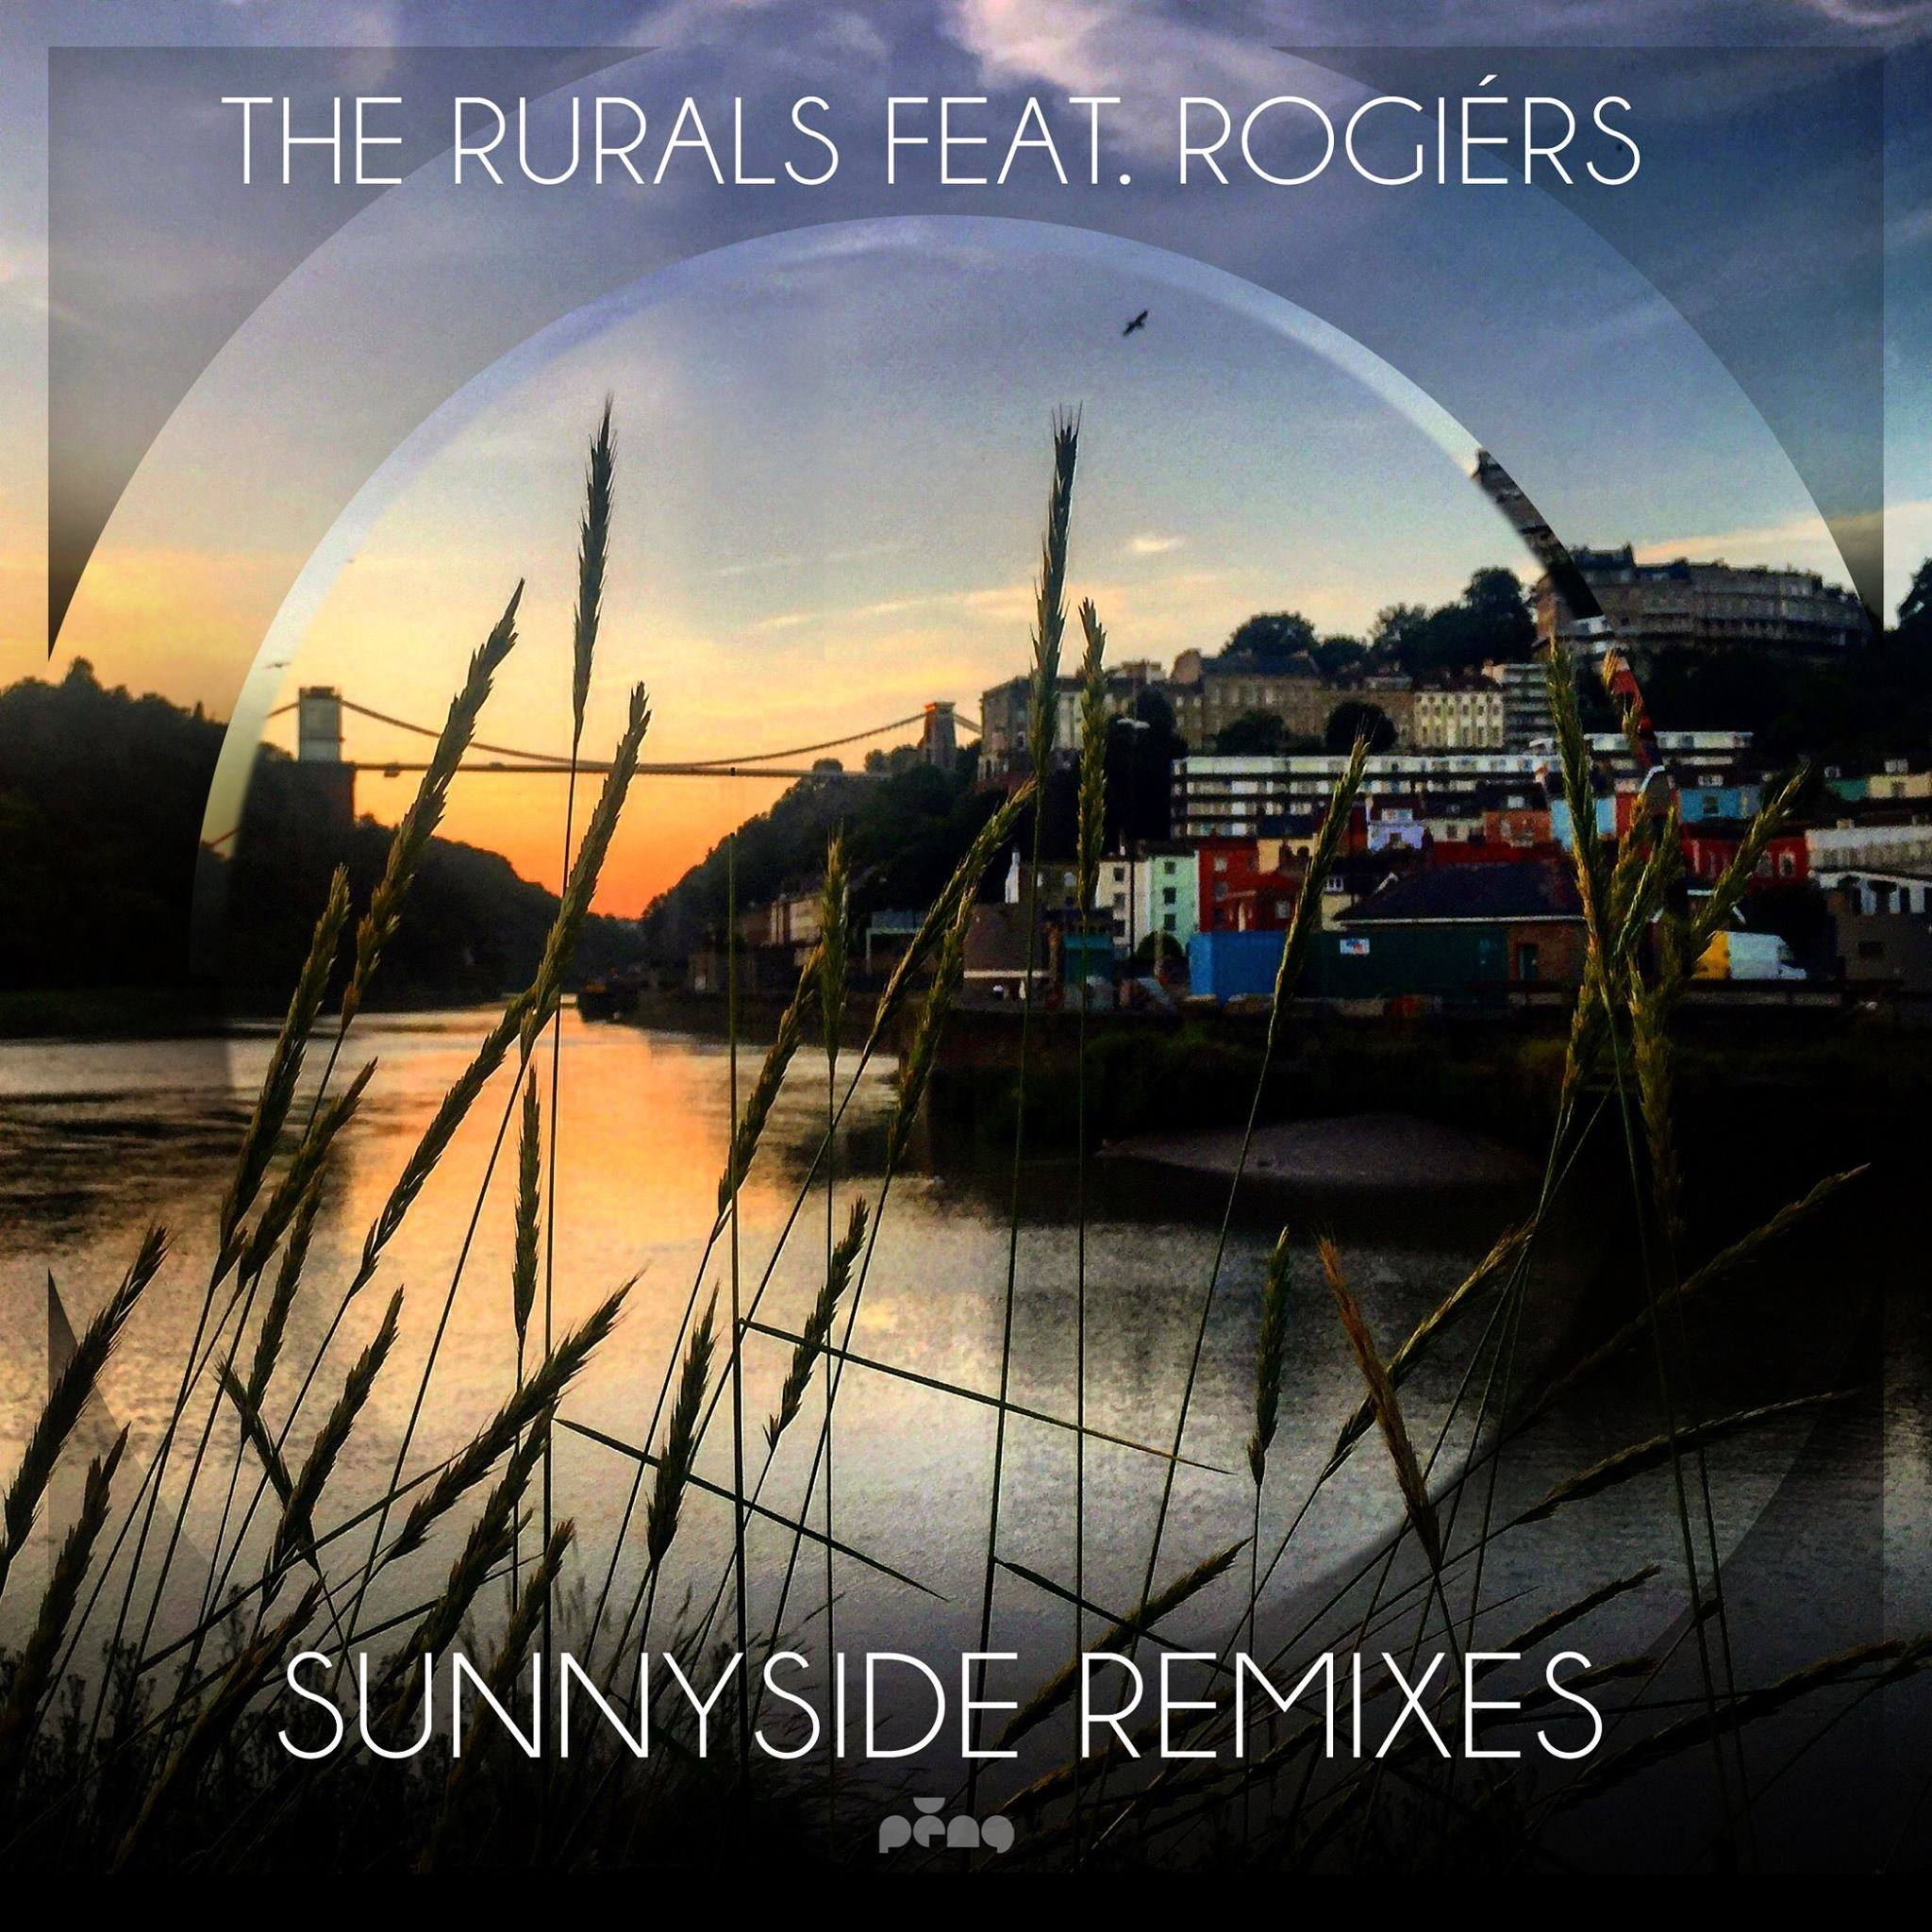 The Rurals featuring Rogiérs: Sunnyside Remixes